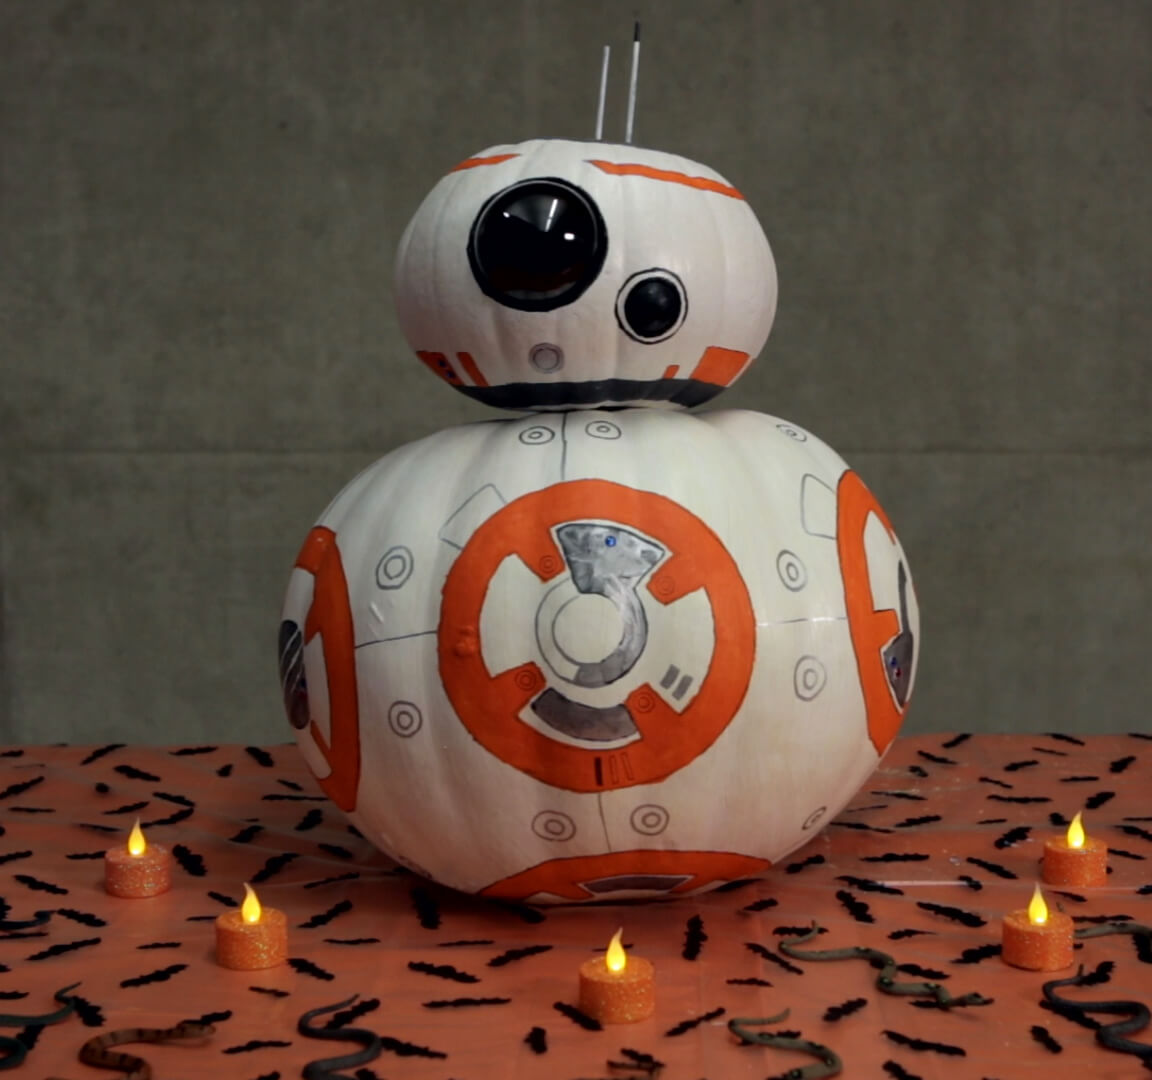 Some designs are more intricate than others, like this BB8 model!